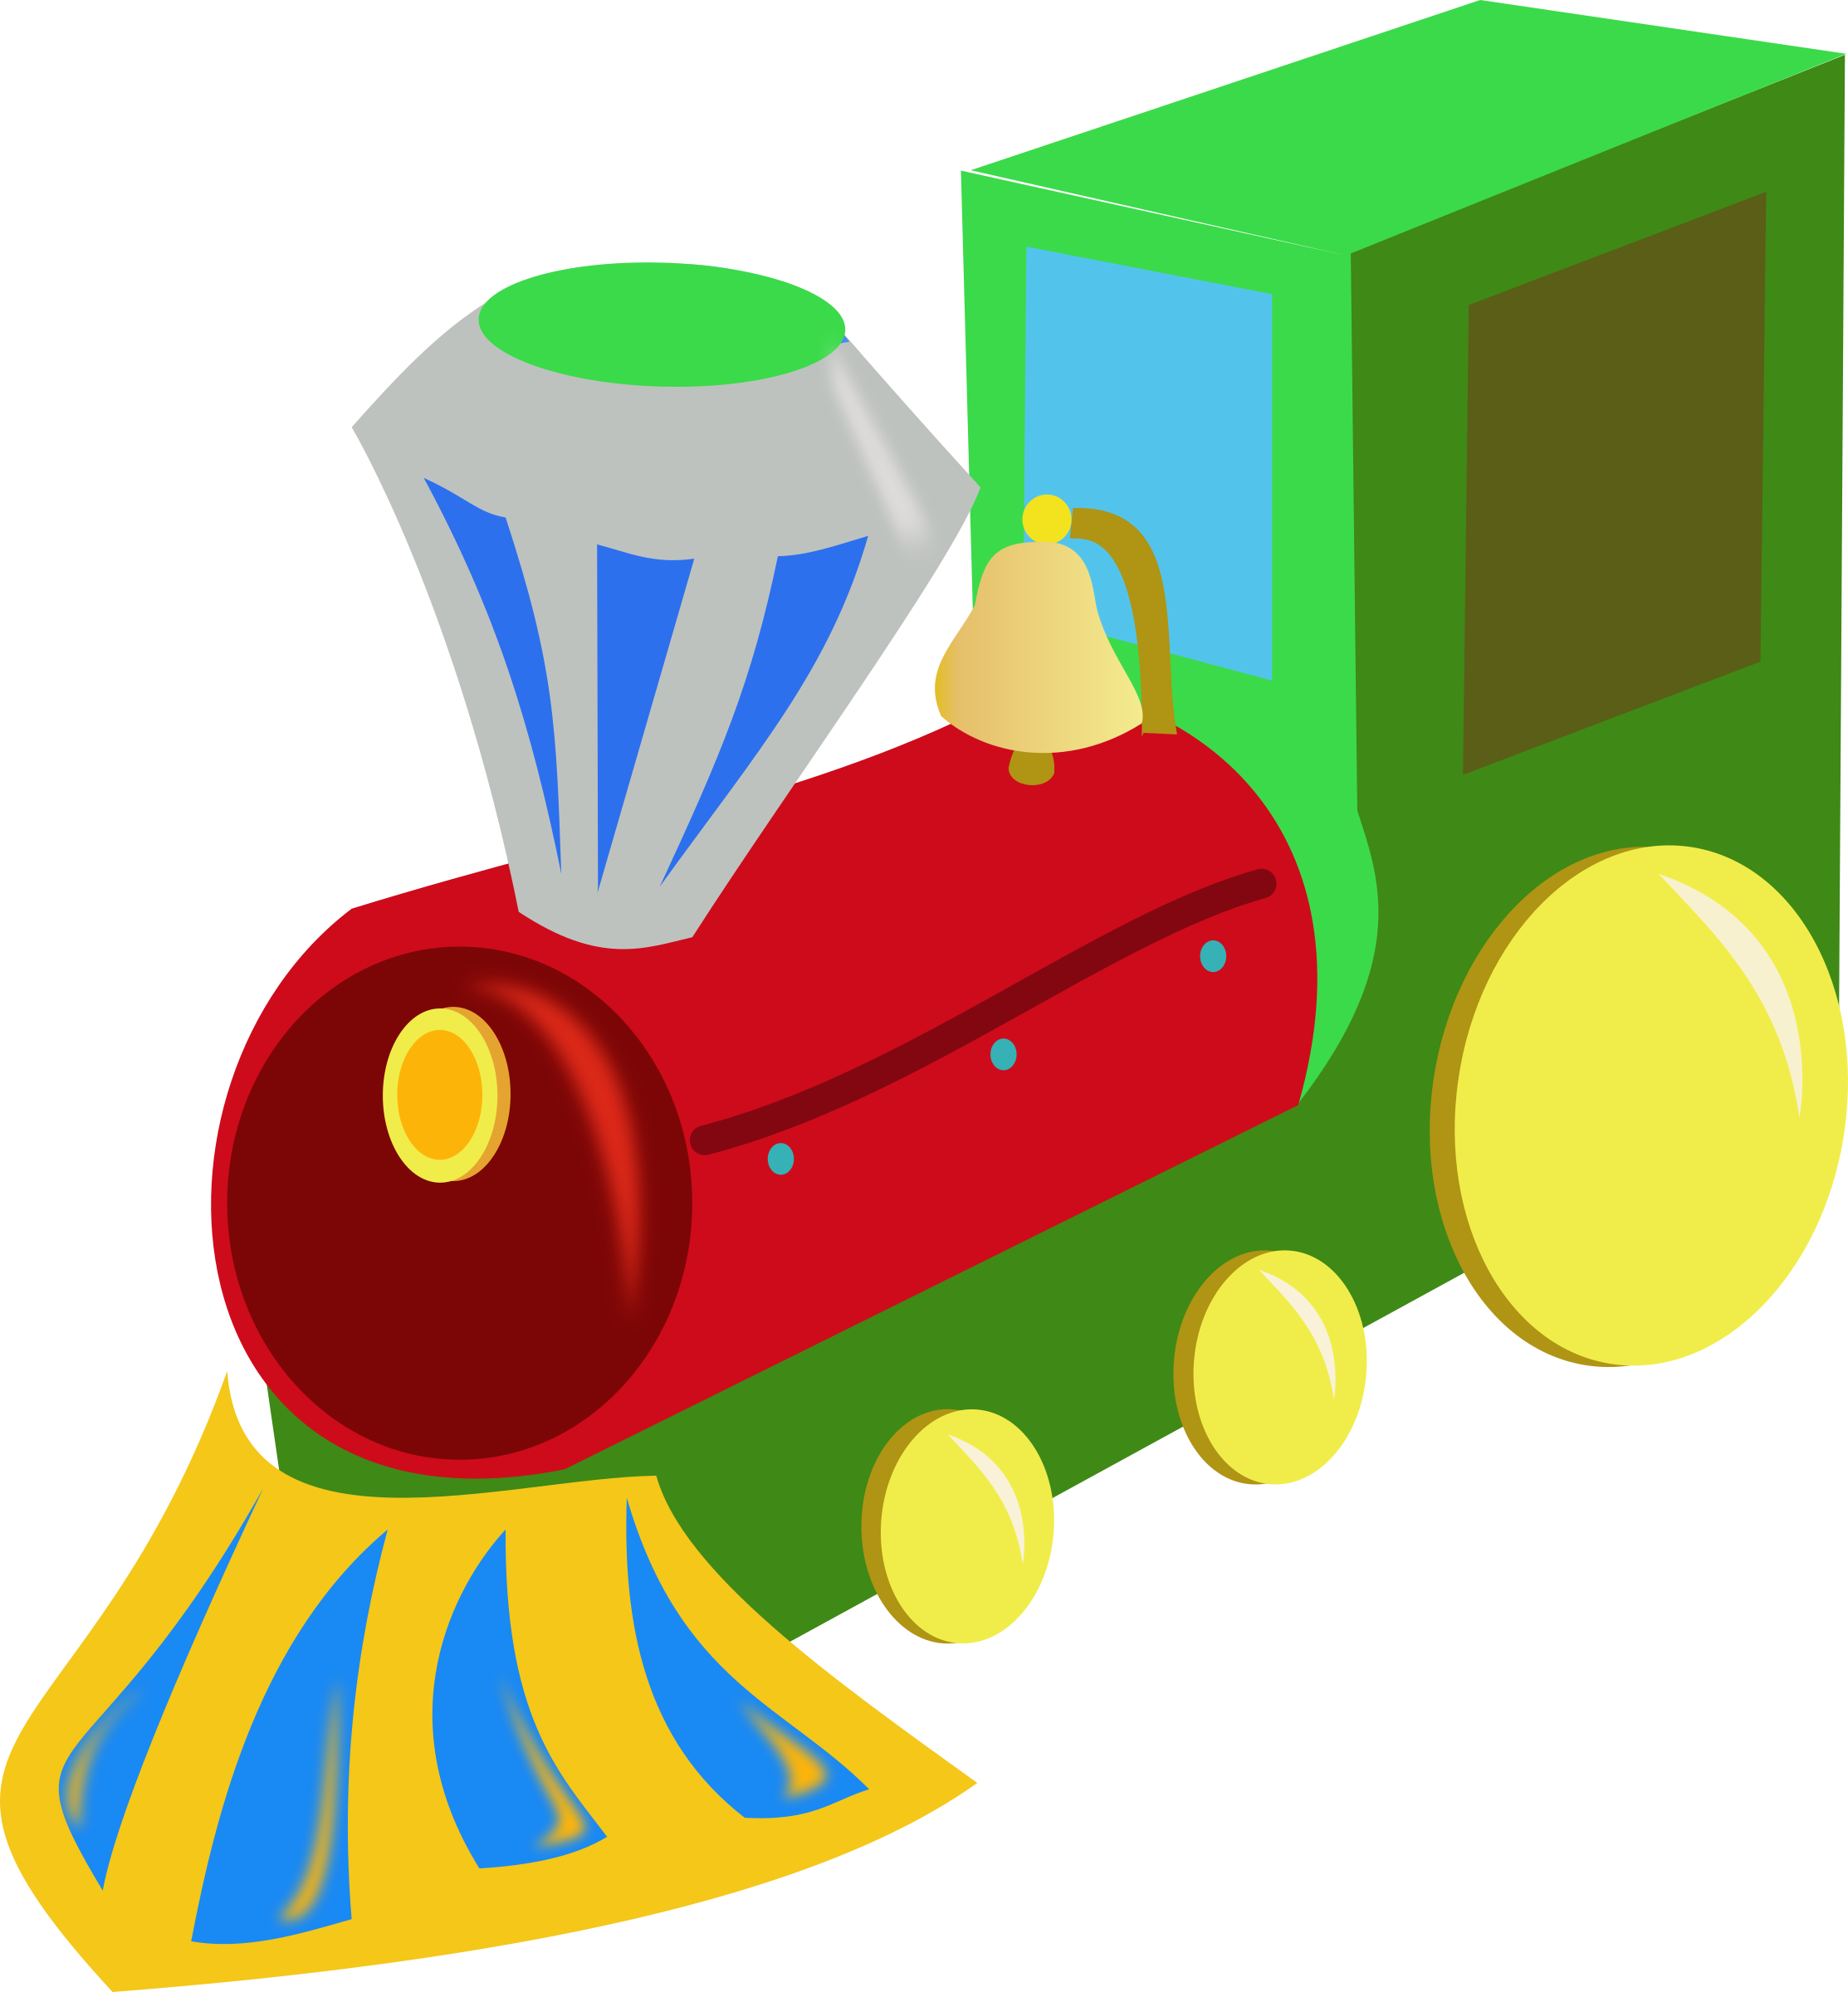 Tren icons png free. Engine clipart red train